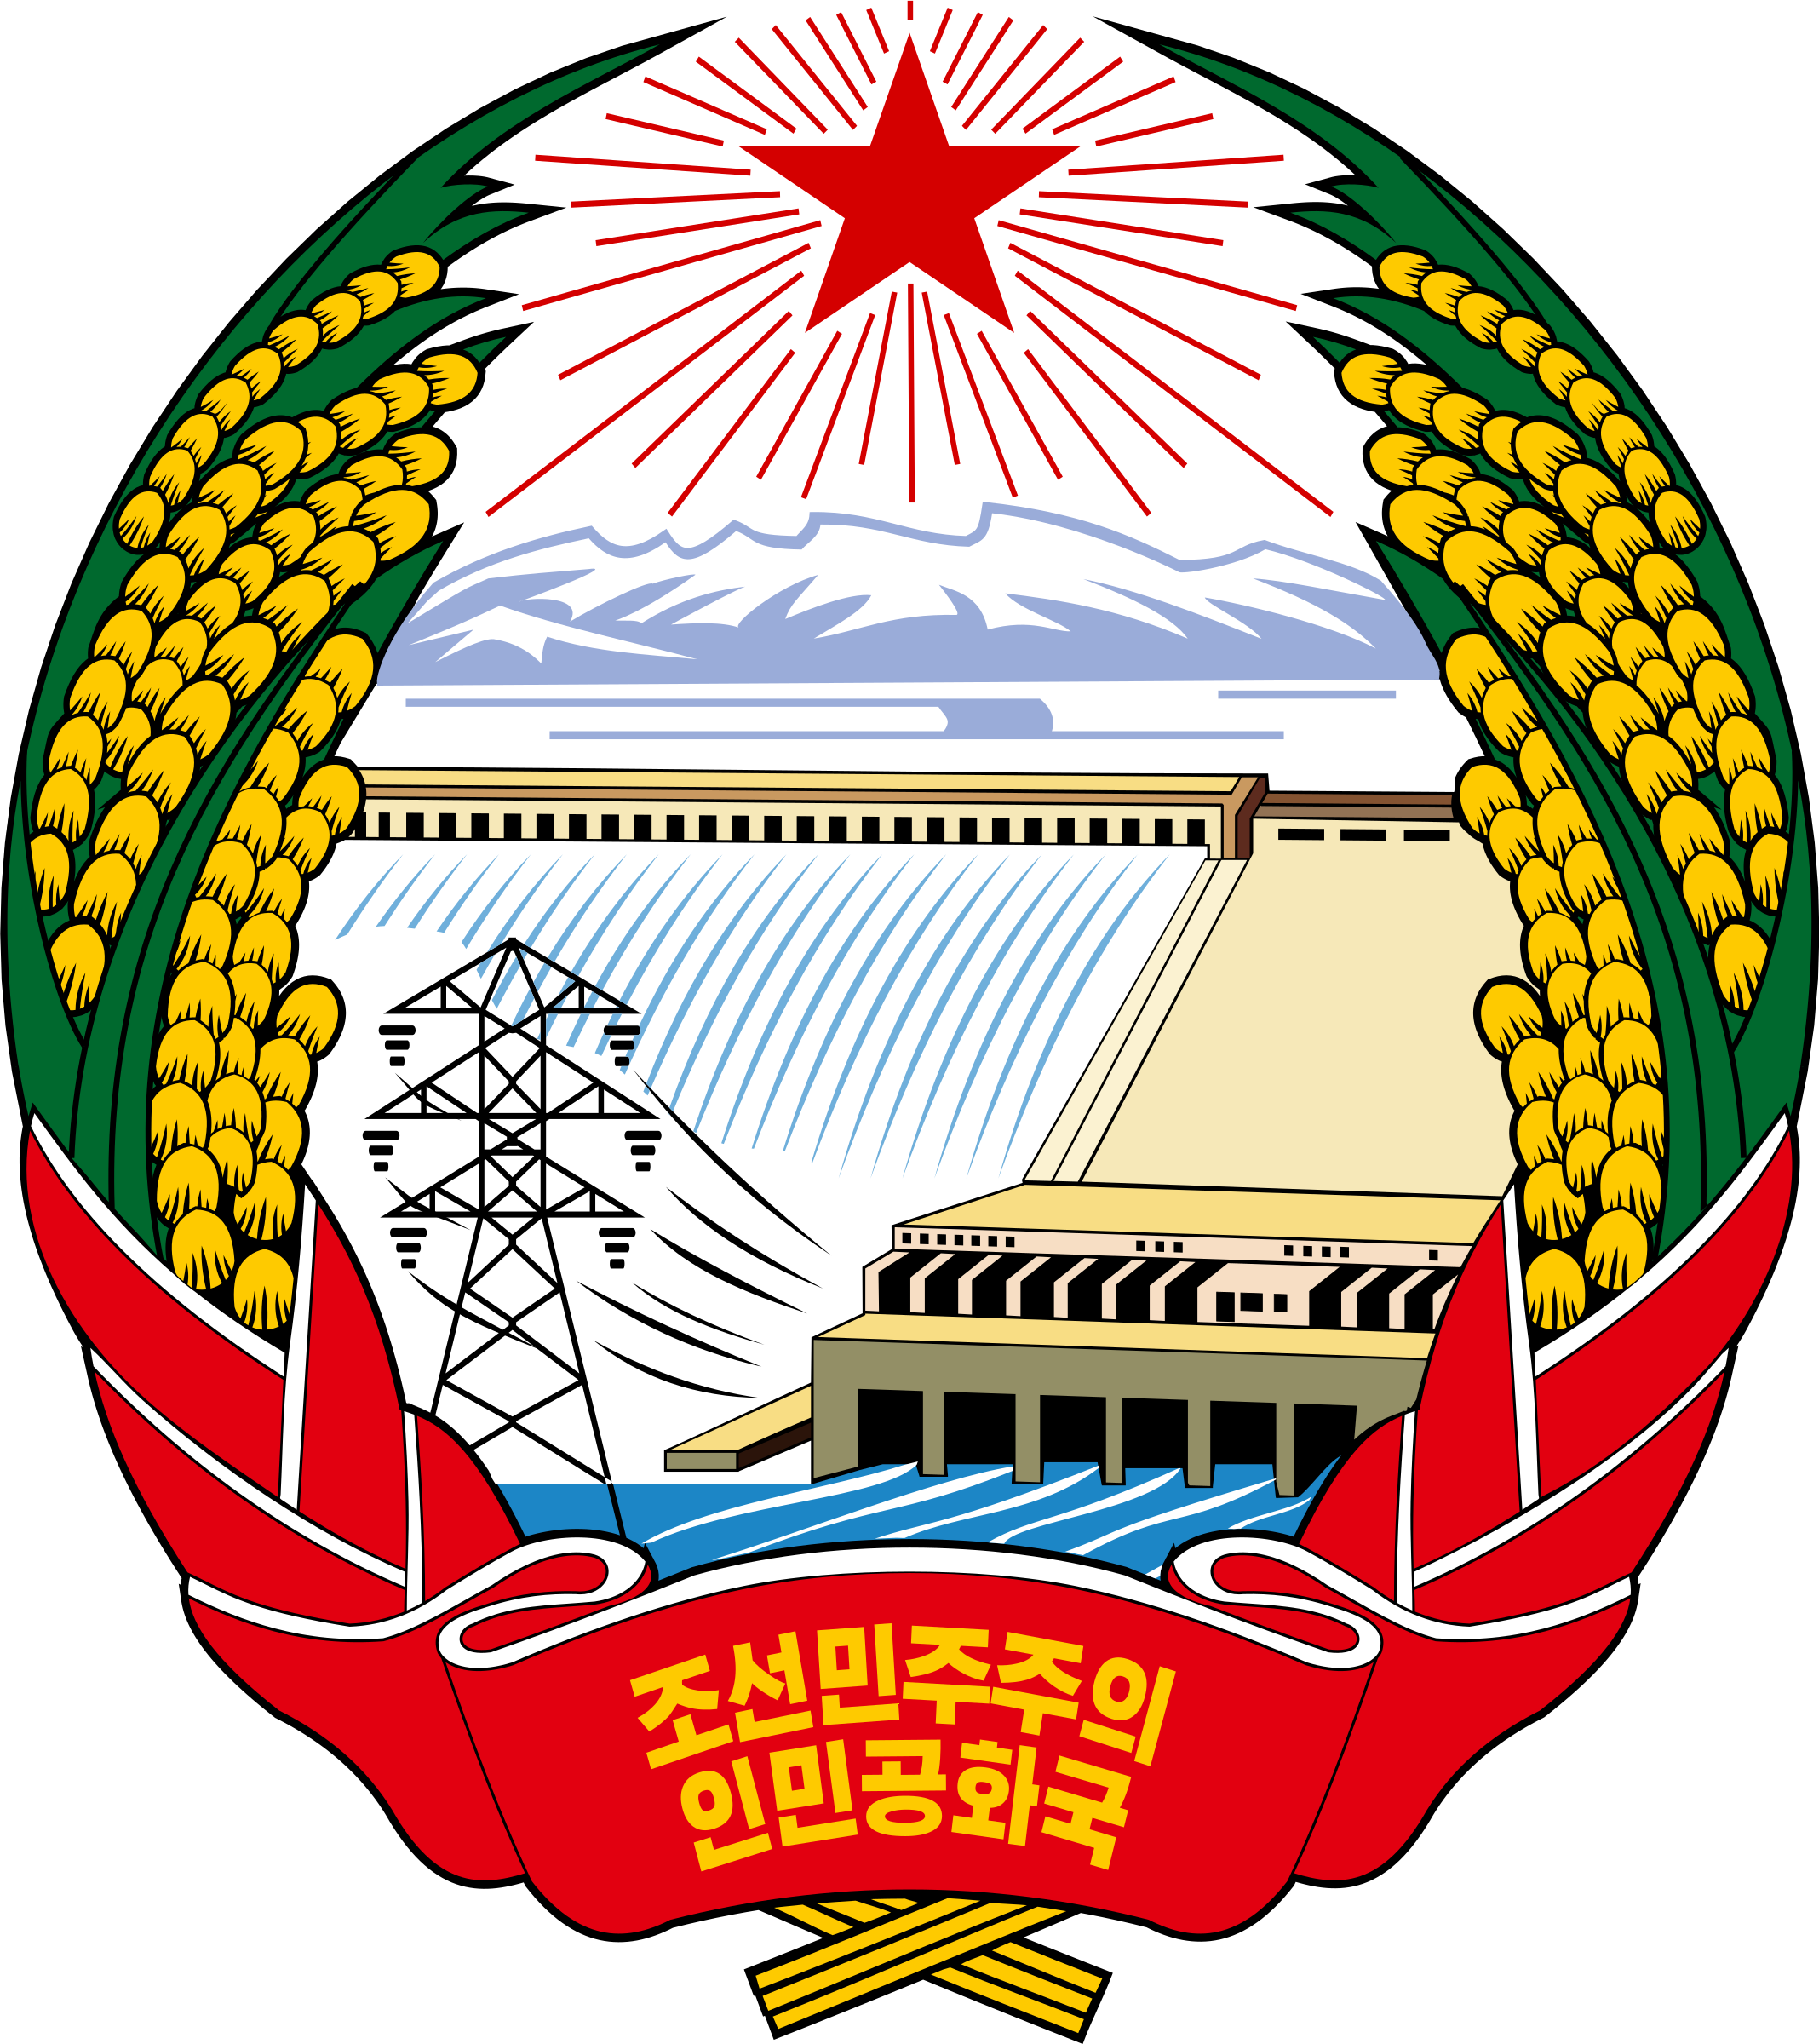 Emblem of North Korea by j4p4n